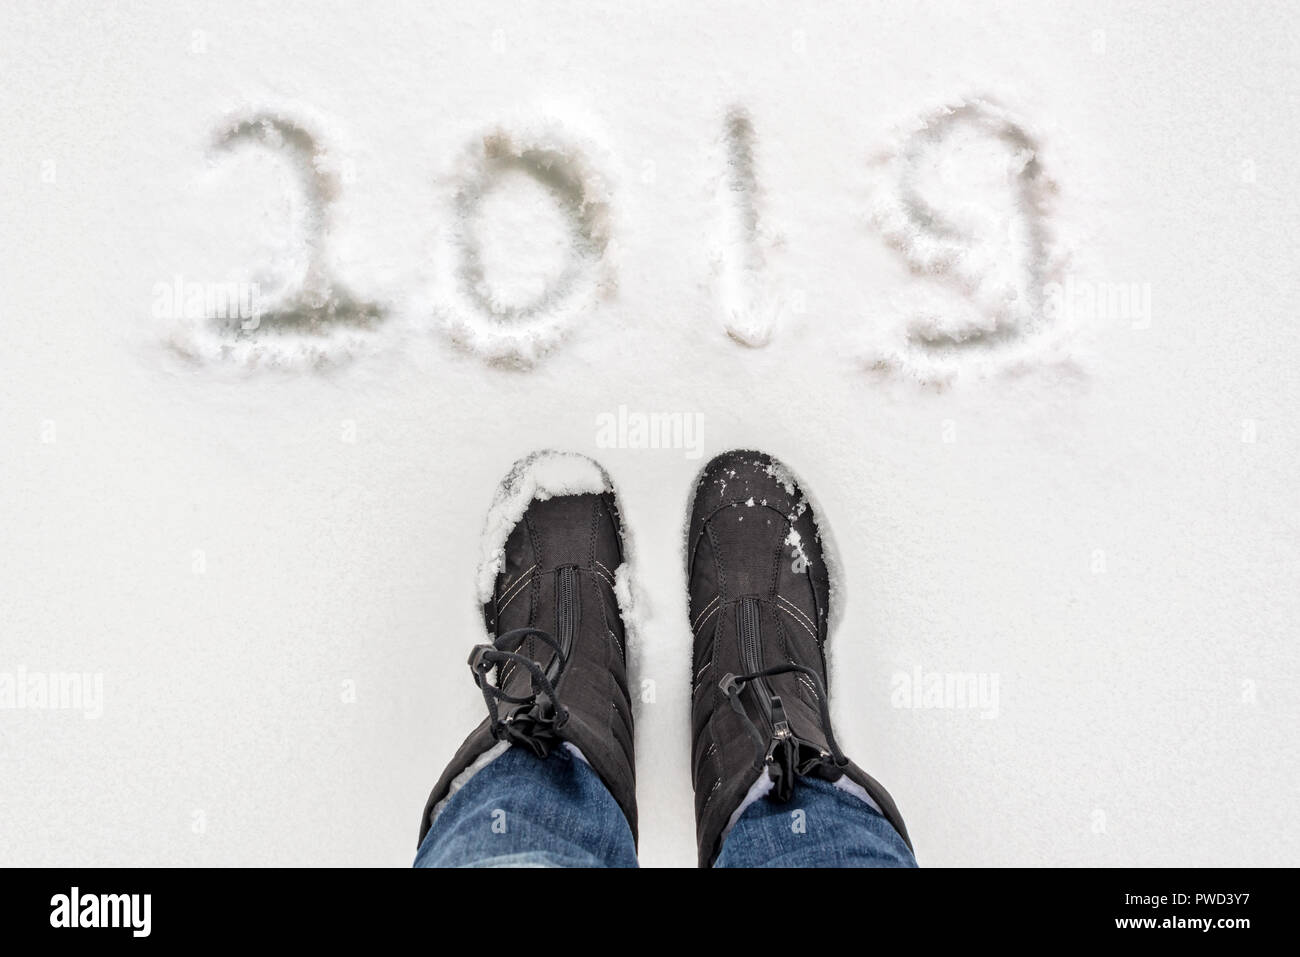 Selfie of boots and 2019 written in the snow, winter concept - Stock Image